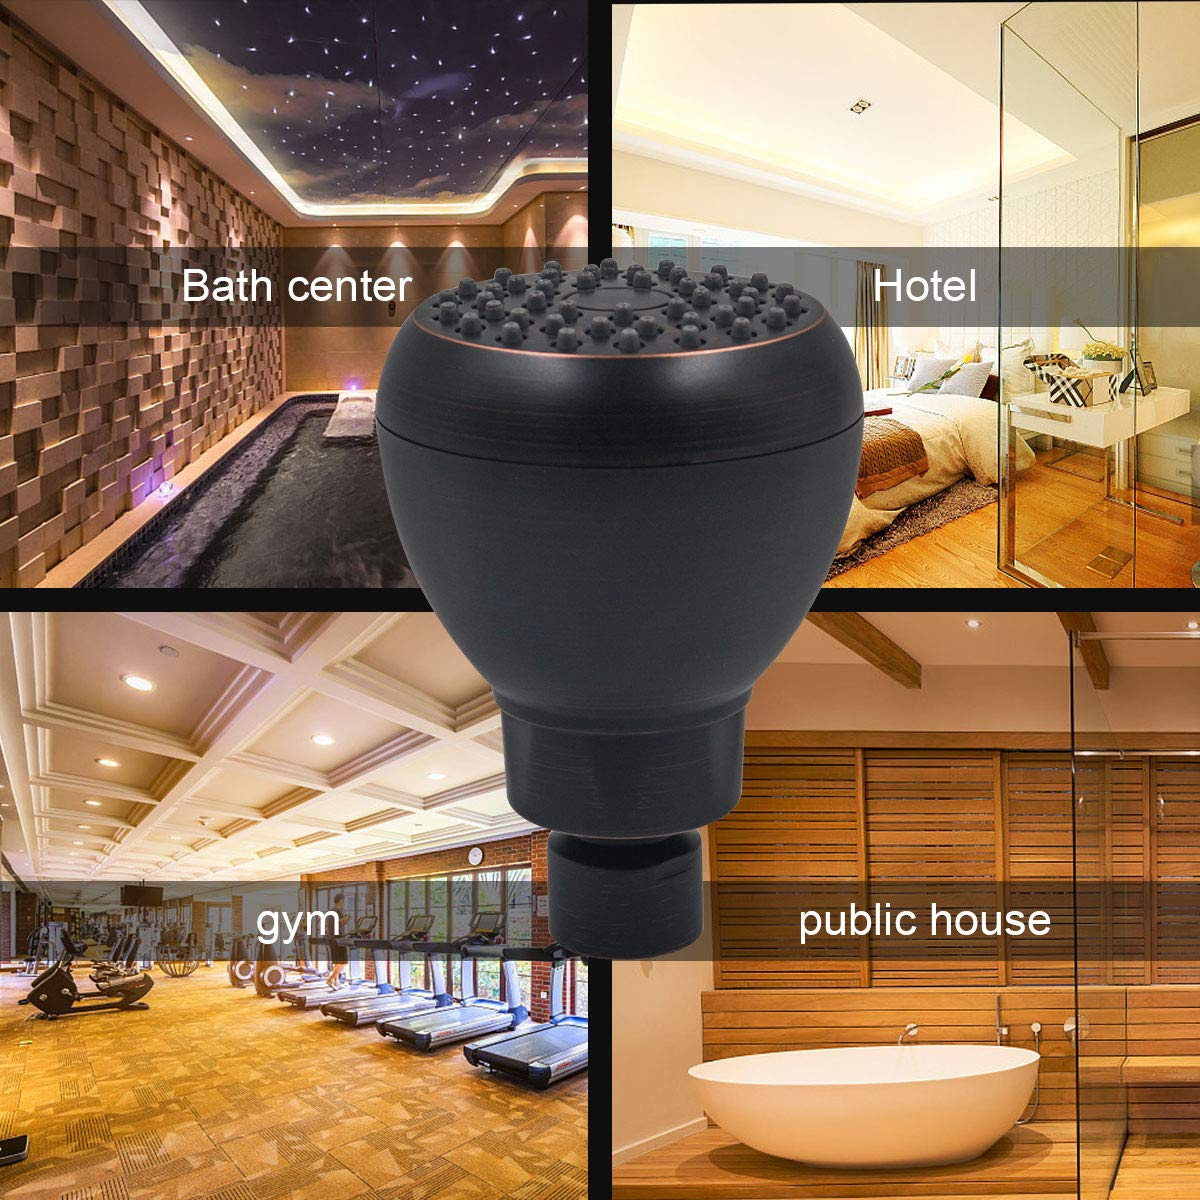 Adjustable Metal Swivel Ball Joint with Filter High Pressure Shower Head Black with Bronze 3 Inch Anti-clog Anti-leak Fixed Showerhead